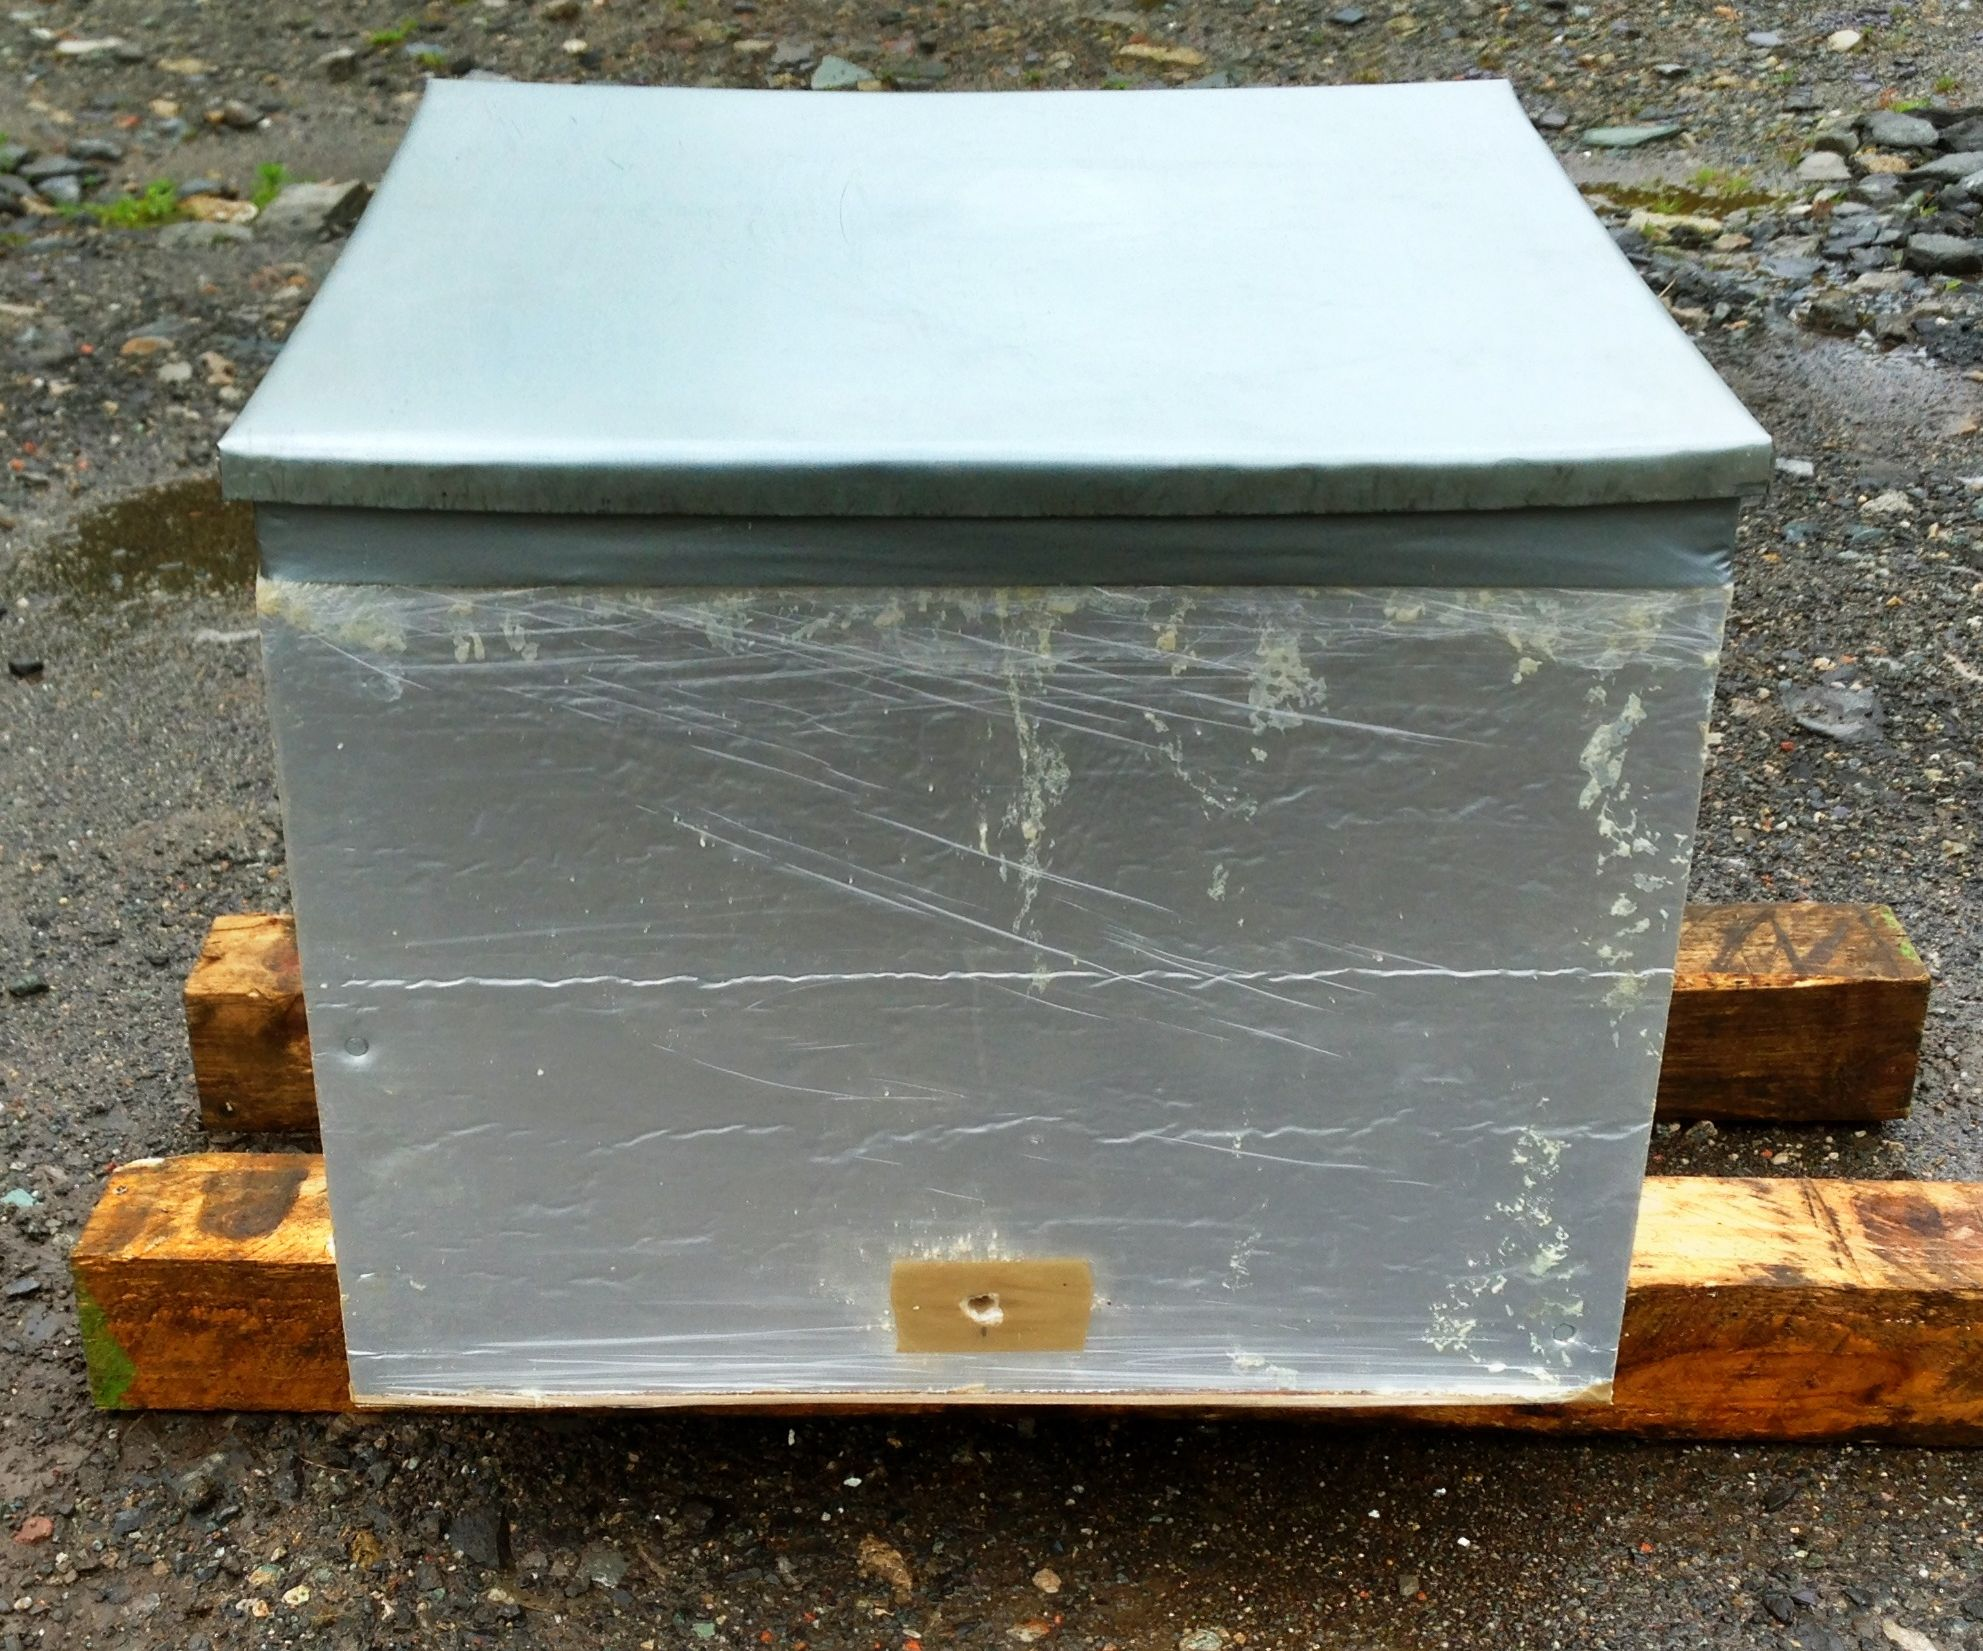 Insulation for National Beehives